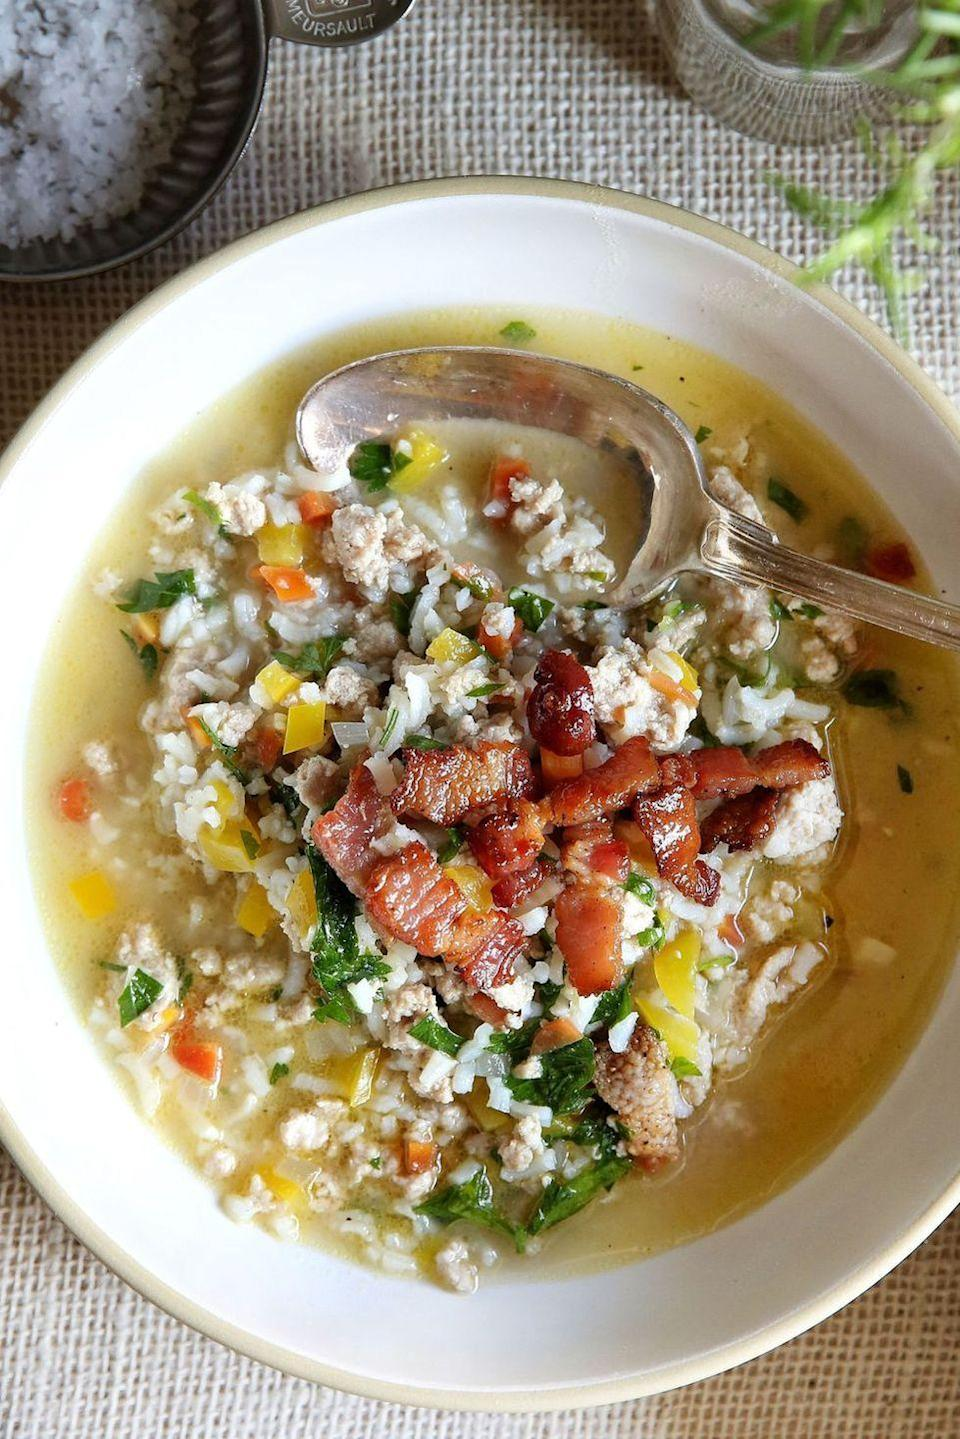 """<p>Not only does this recipe involve your leftover food, but your leftover white wine, too!</p><p><em><a href=""""https://www.delish.com/cooking/recipe-ideas/recipes/a50147/leftover-turkey-rice-soup-recipe/"""" rel=""""nofollow noopener"""" target=""""_blank"""" data-ylk=""""slk:Get the recipe from Delish »"""" class=""""link rapid-noclick-resp"""">Get the recipe from Delish »</a></em></p>"""